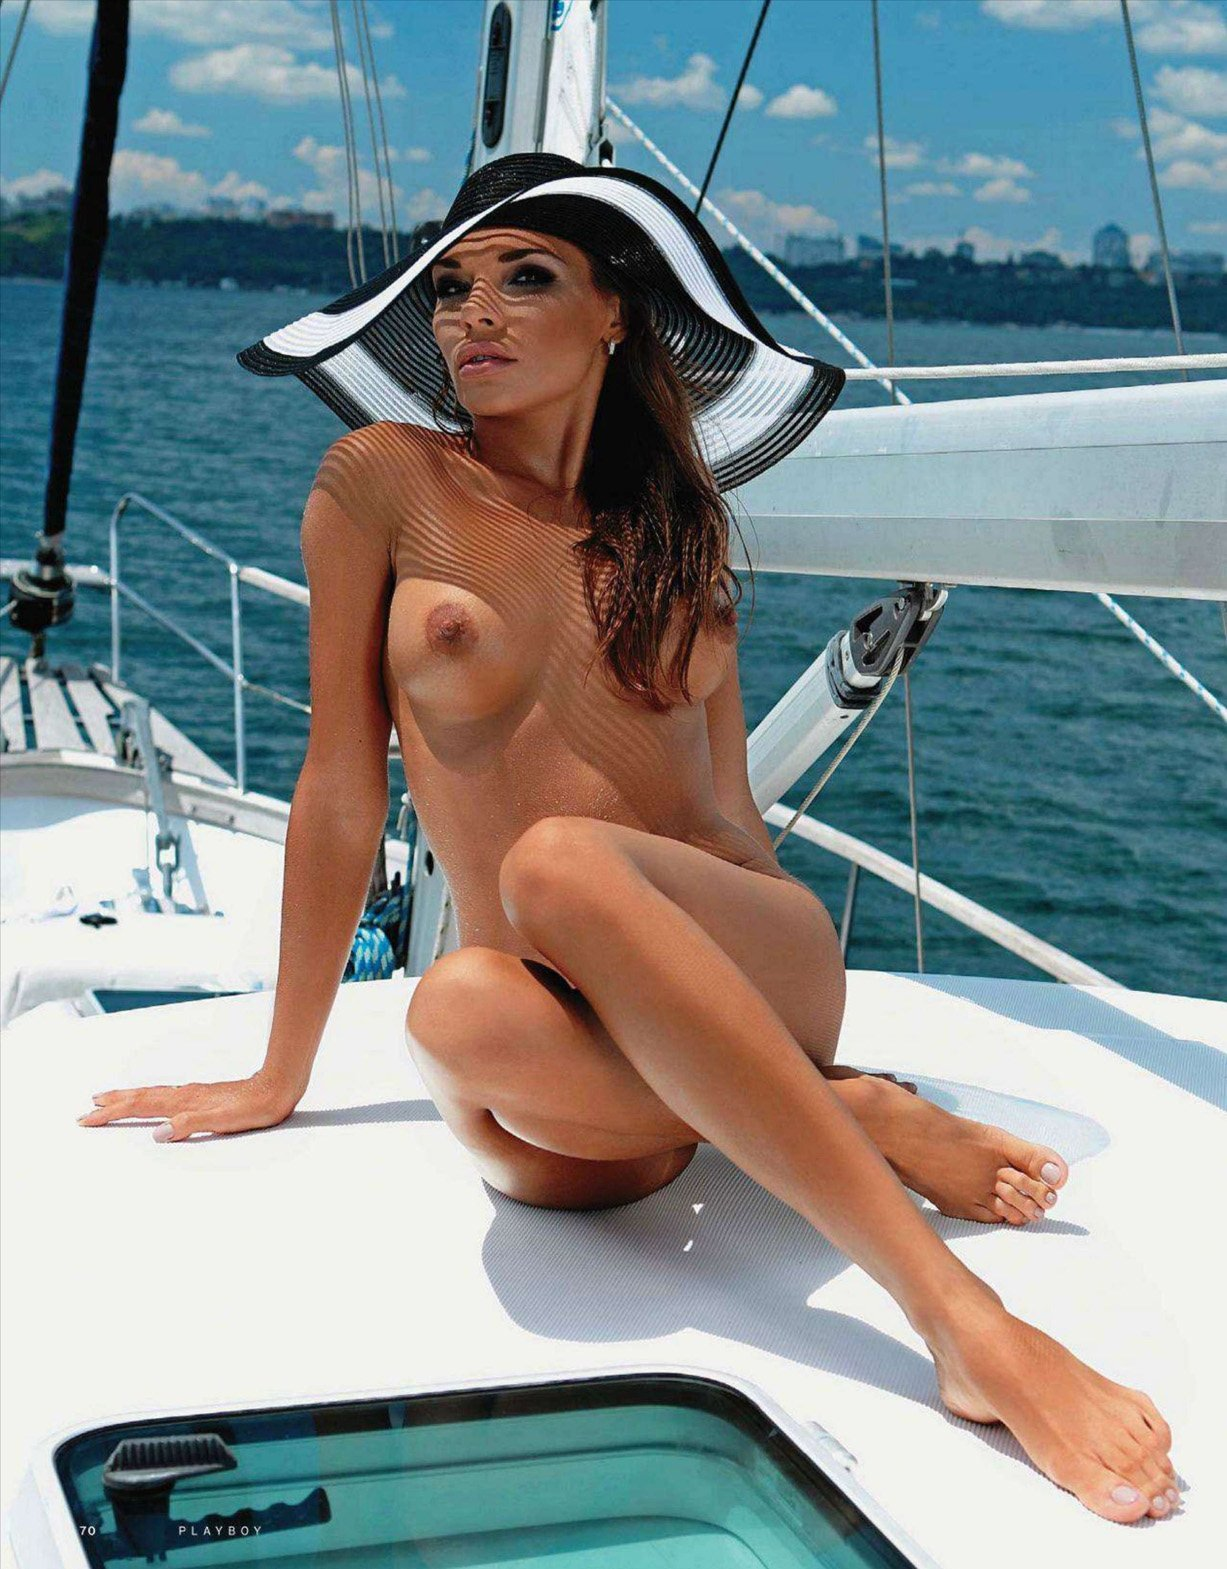 Naked girls yacht or boat